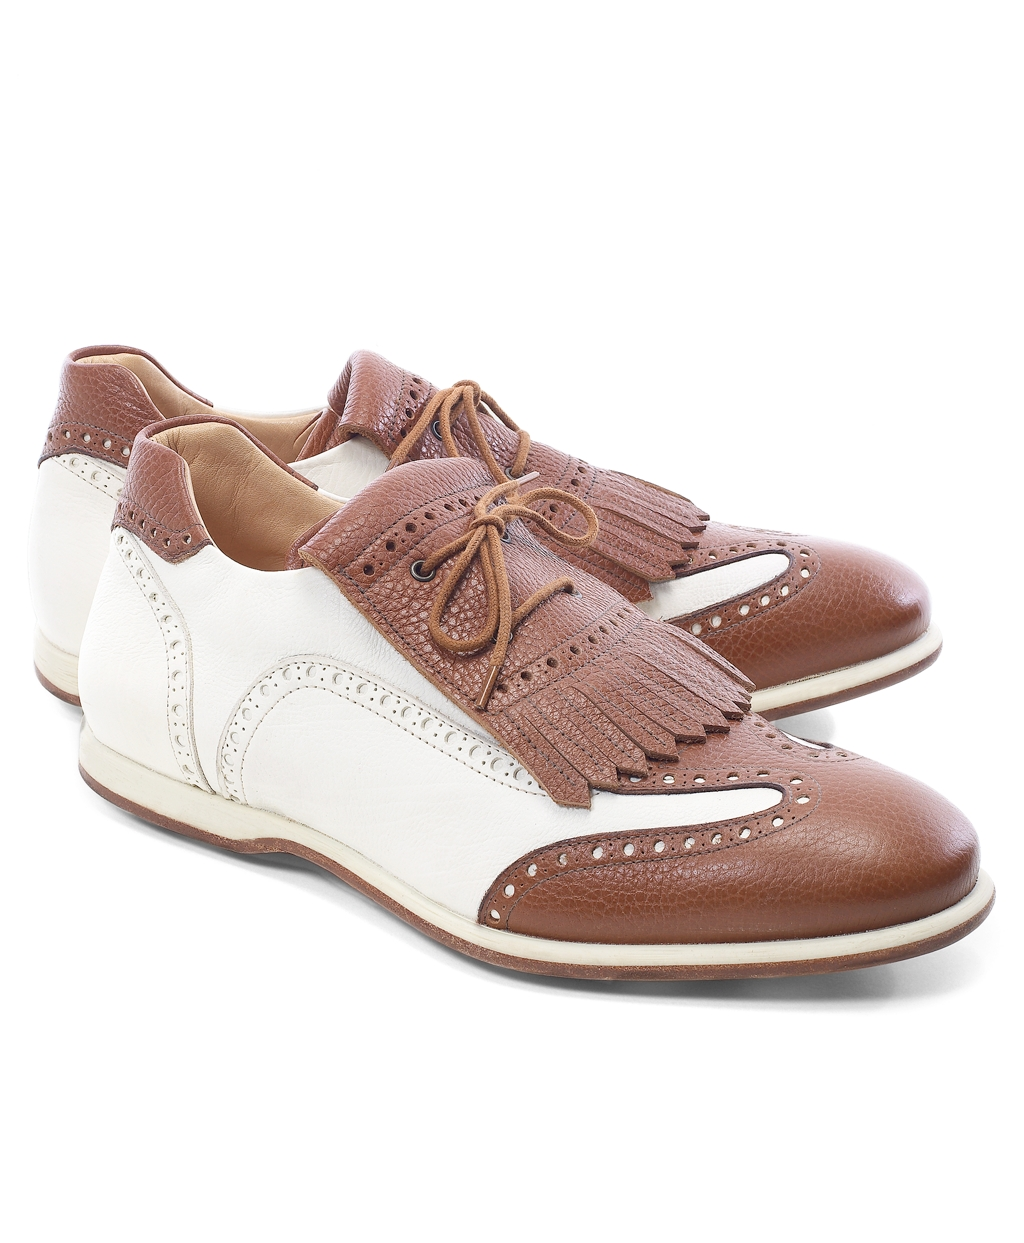 58e06e5b778 Lyst - Brooks Brothers Kiltie Golf Shoes in Brown for Men